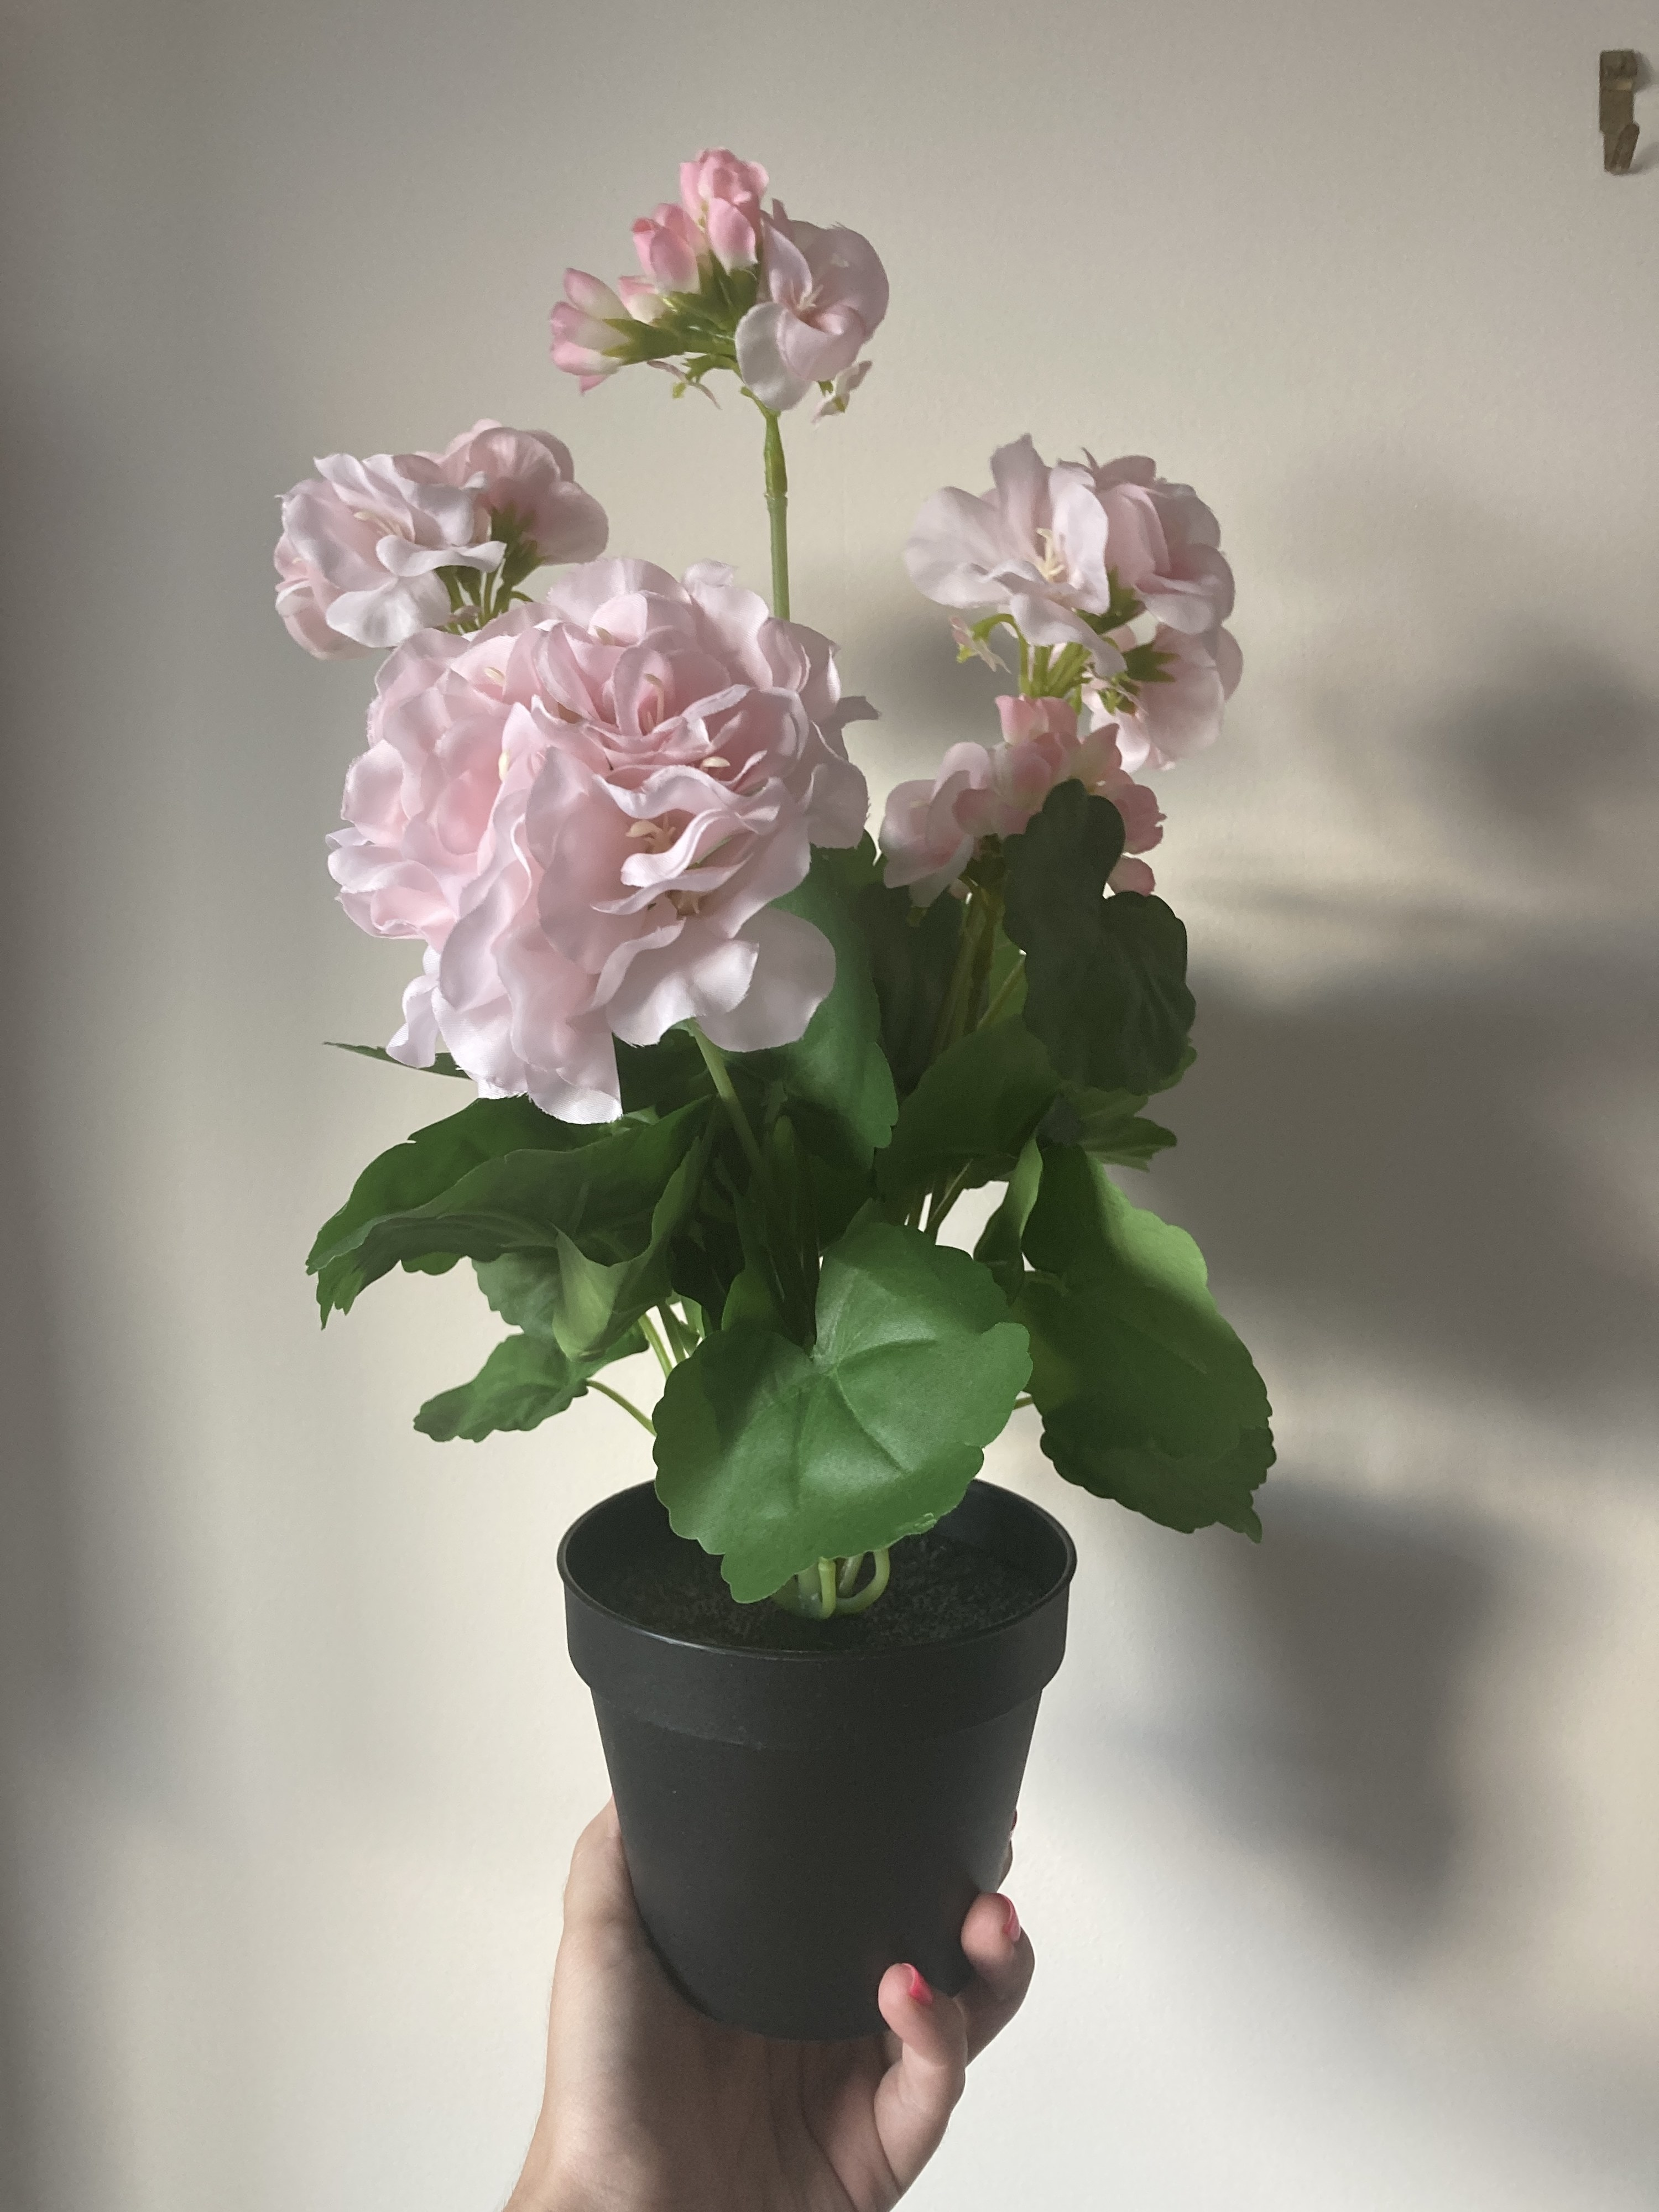 A small pot of fake flowers